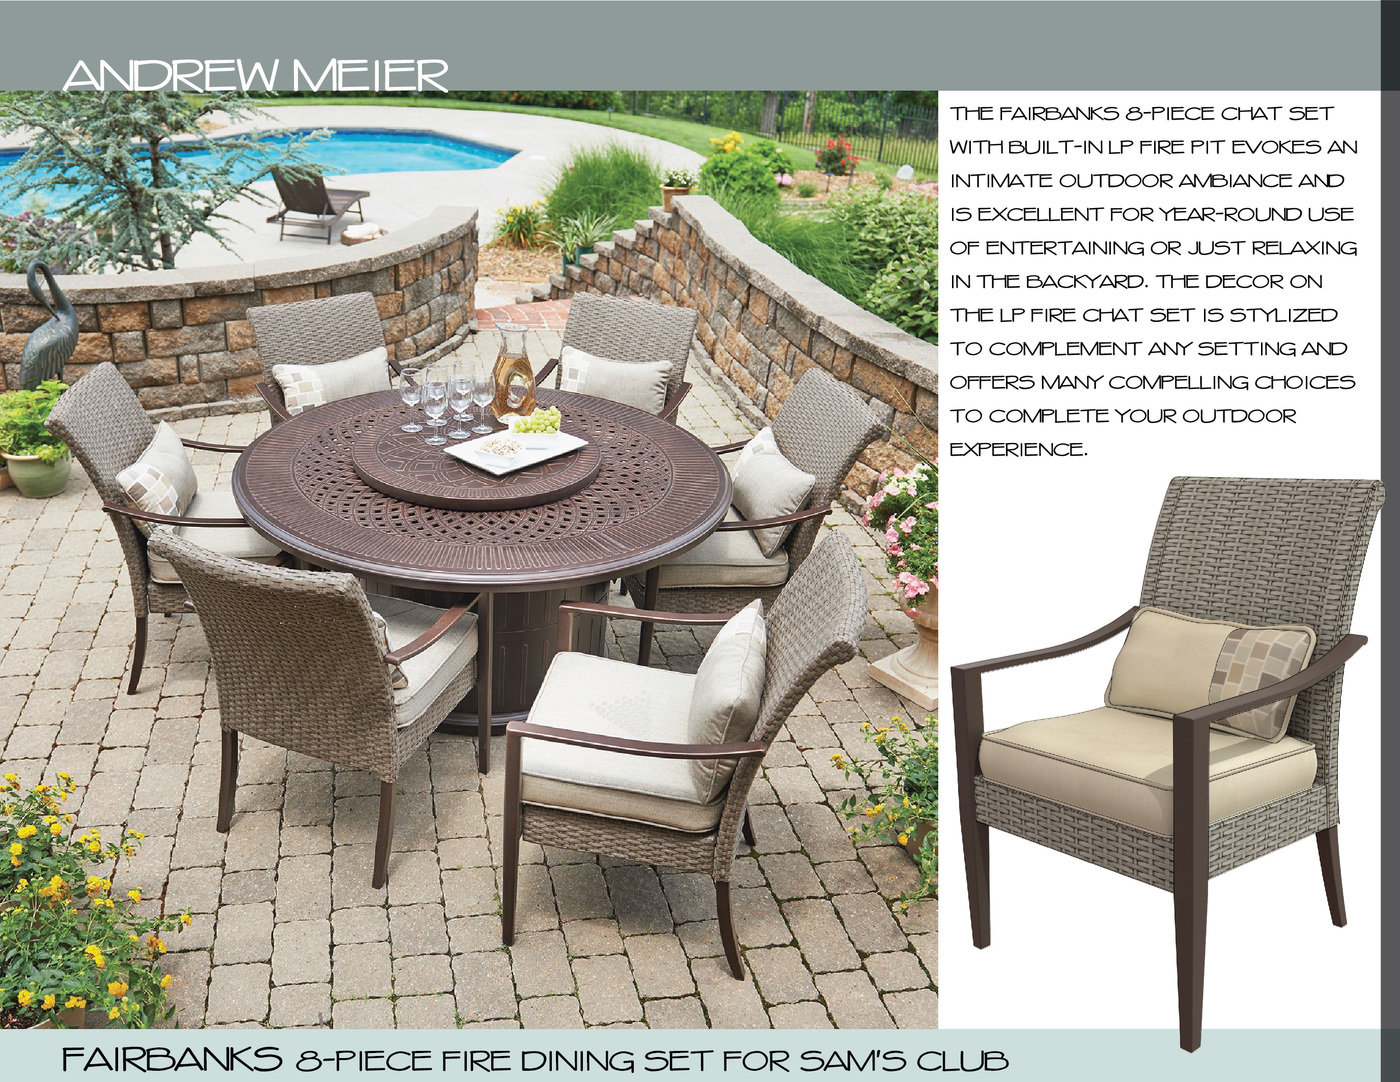 outdoor furniture by andrew meier at